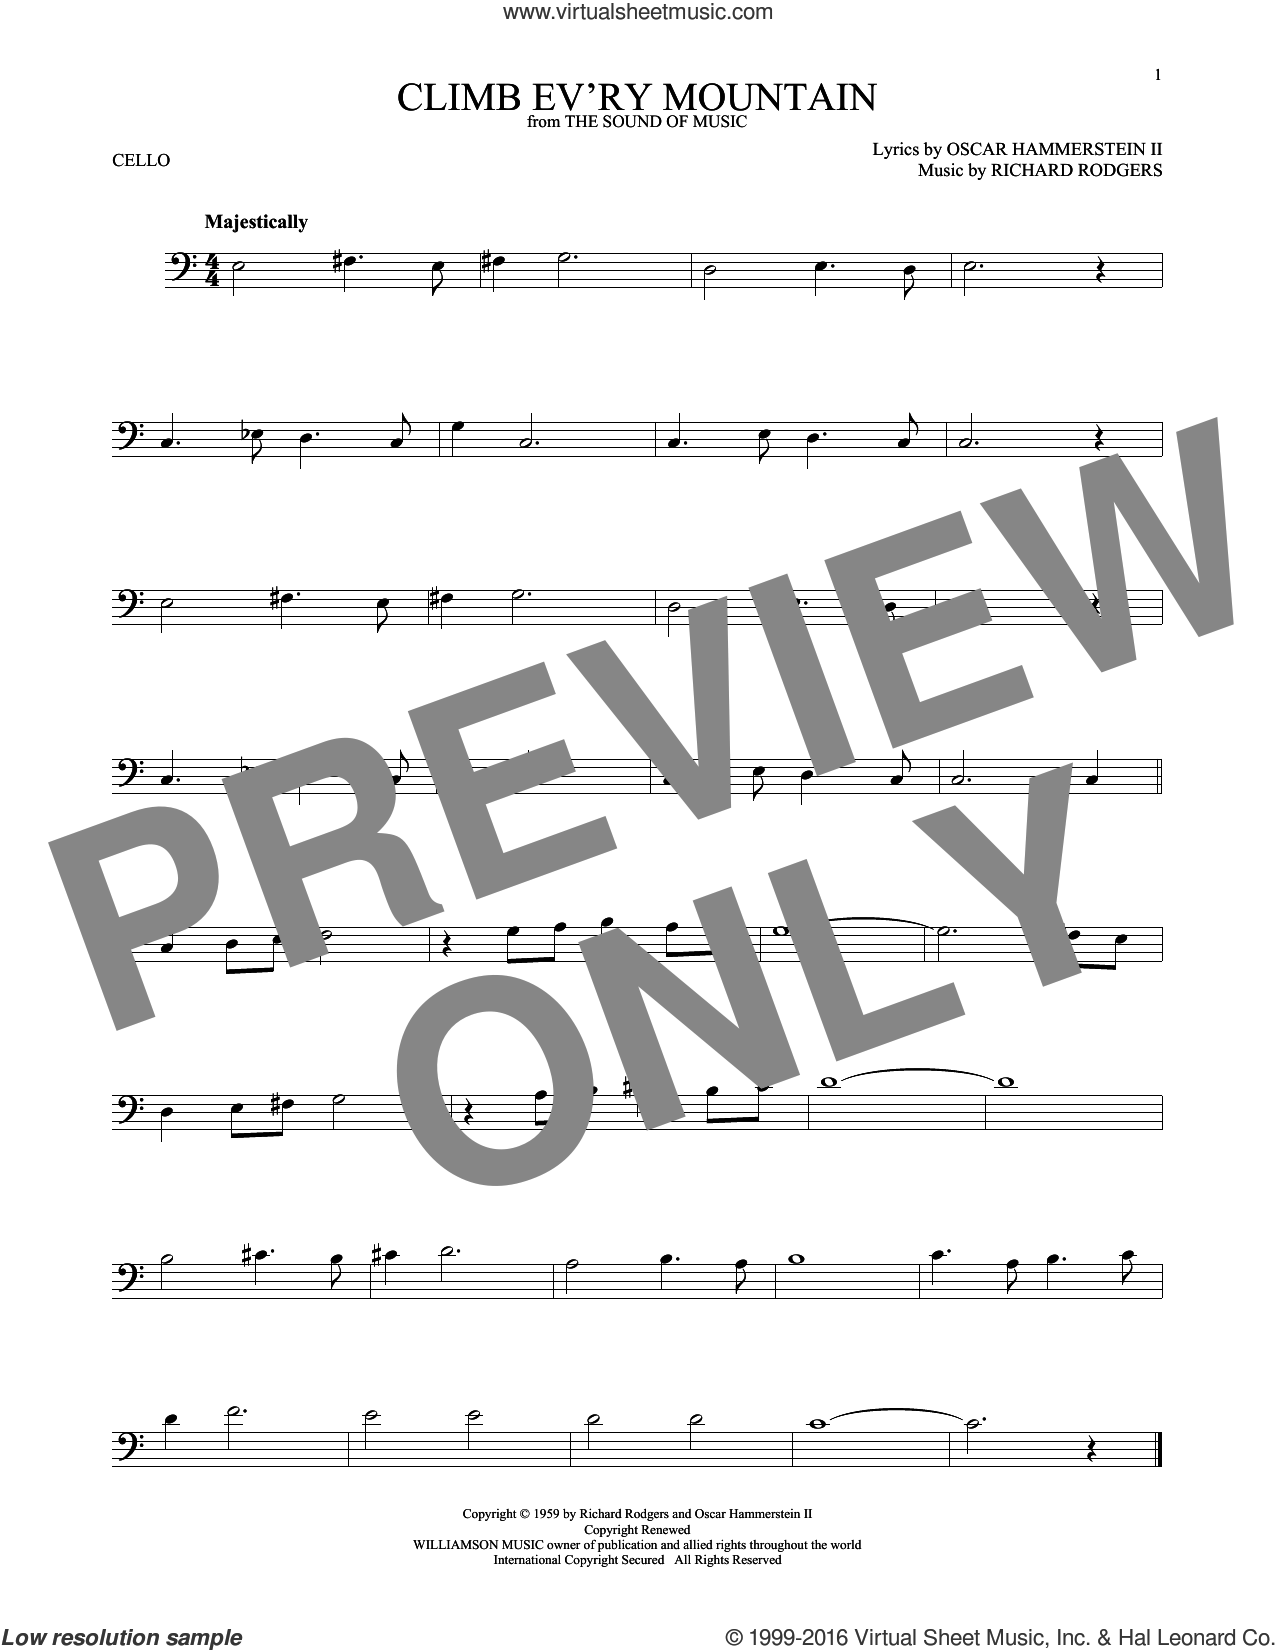 Climb Ev'ry Mountain sheet music for cello solo by Rodgers & Hammerstein, Tony Bennett, Oscar II Hammerstein and Richard Rodgers, intermediate. Score Image Preview.